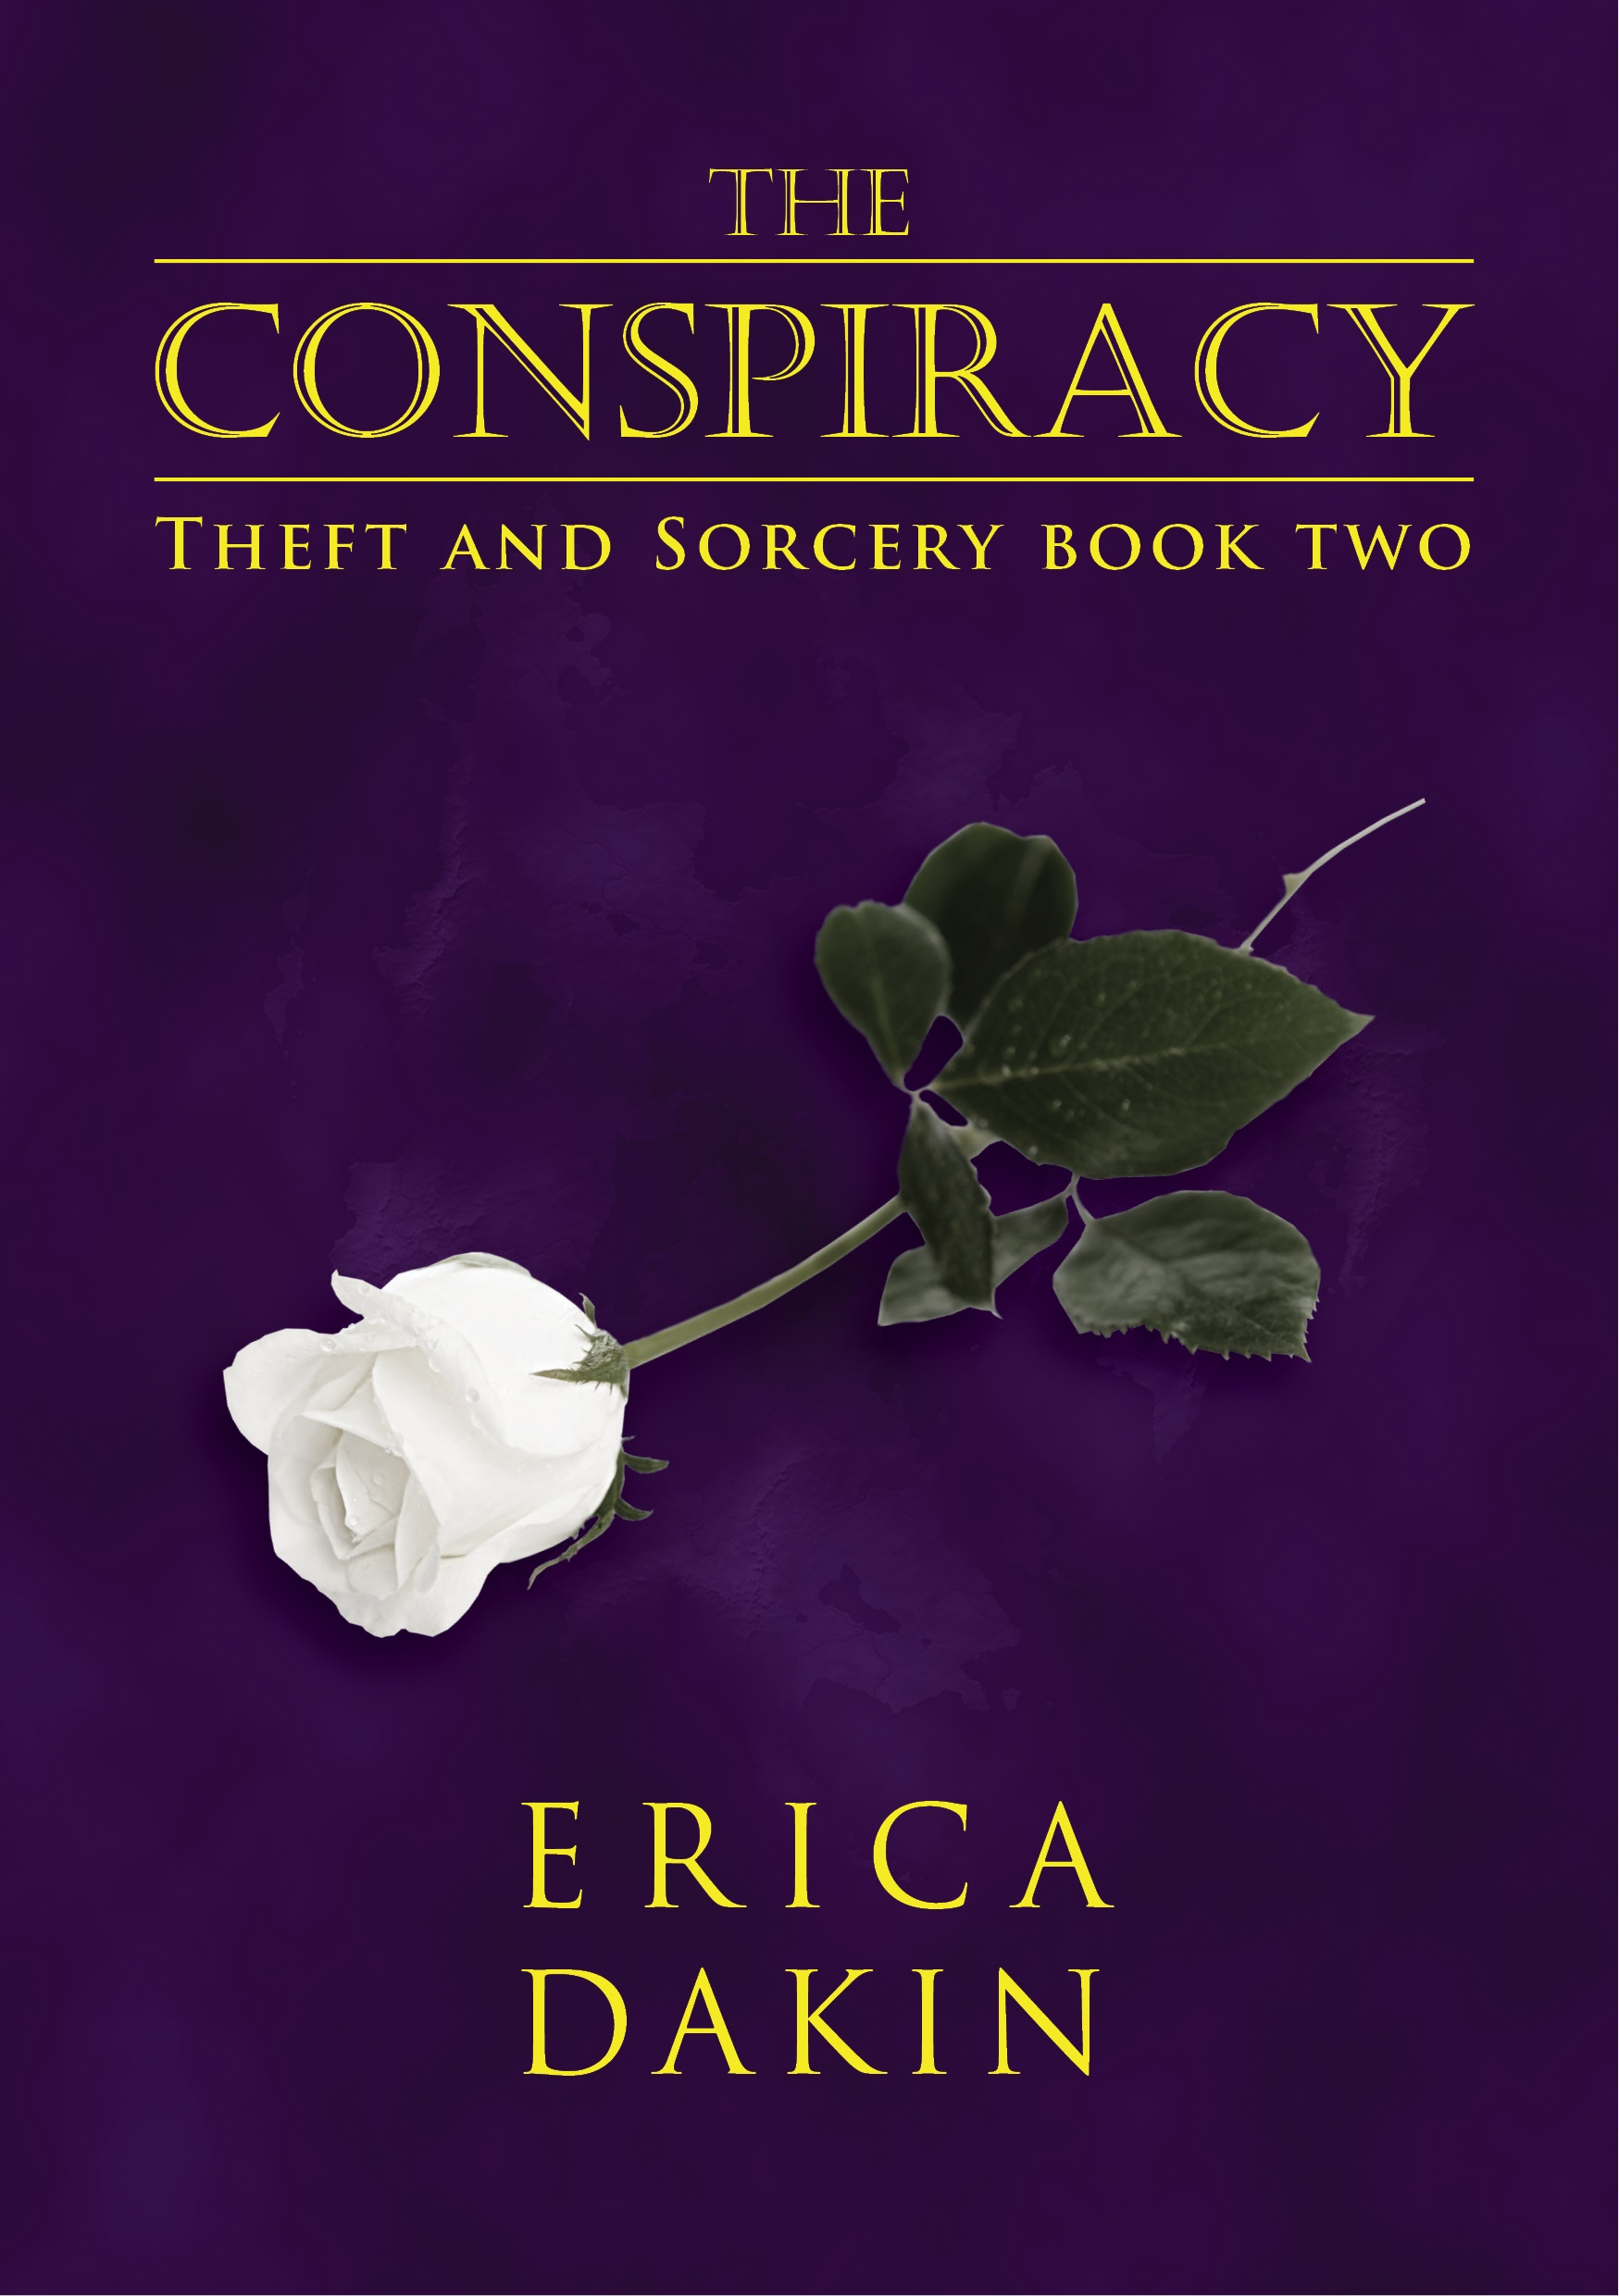 Theft And Sorcery 2 The Conspiracy